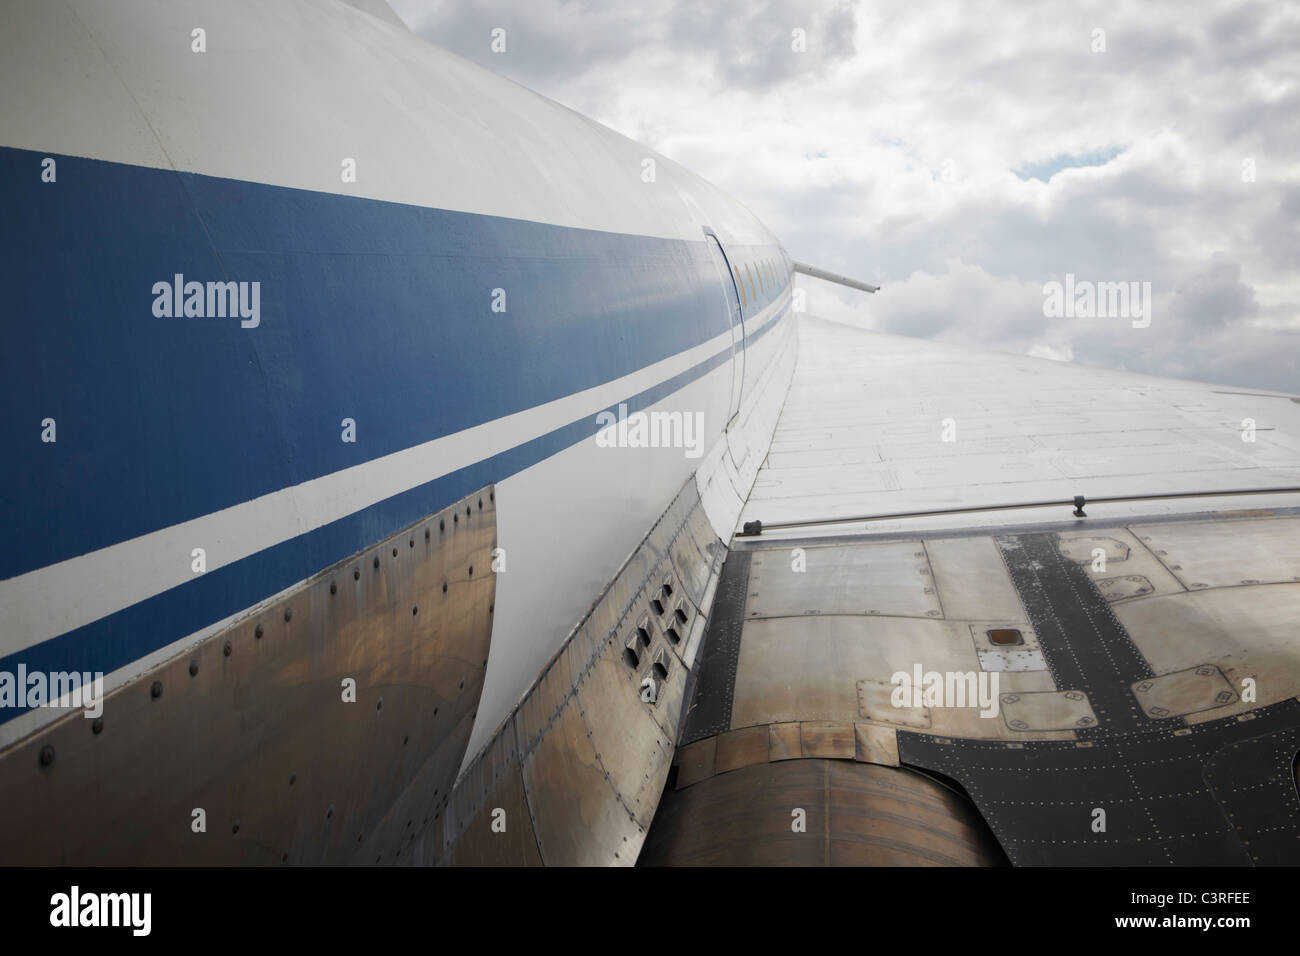 Germany, Sinsheim, Concorde at the Auto & Technik Museum - Stock Image